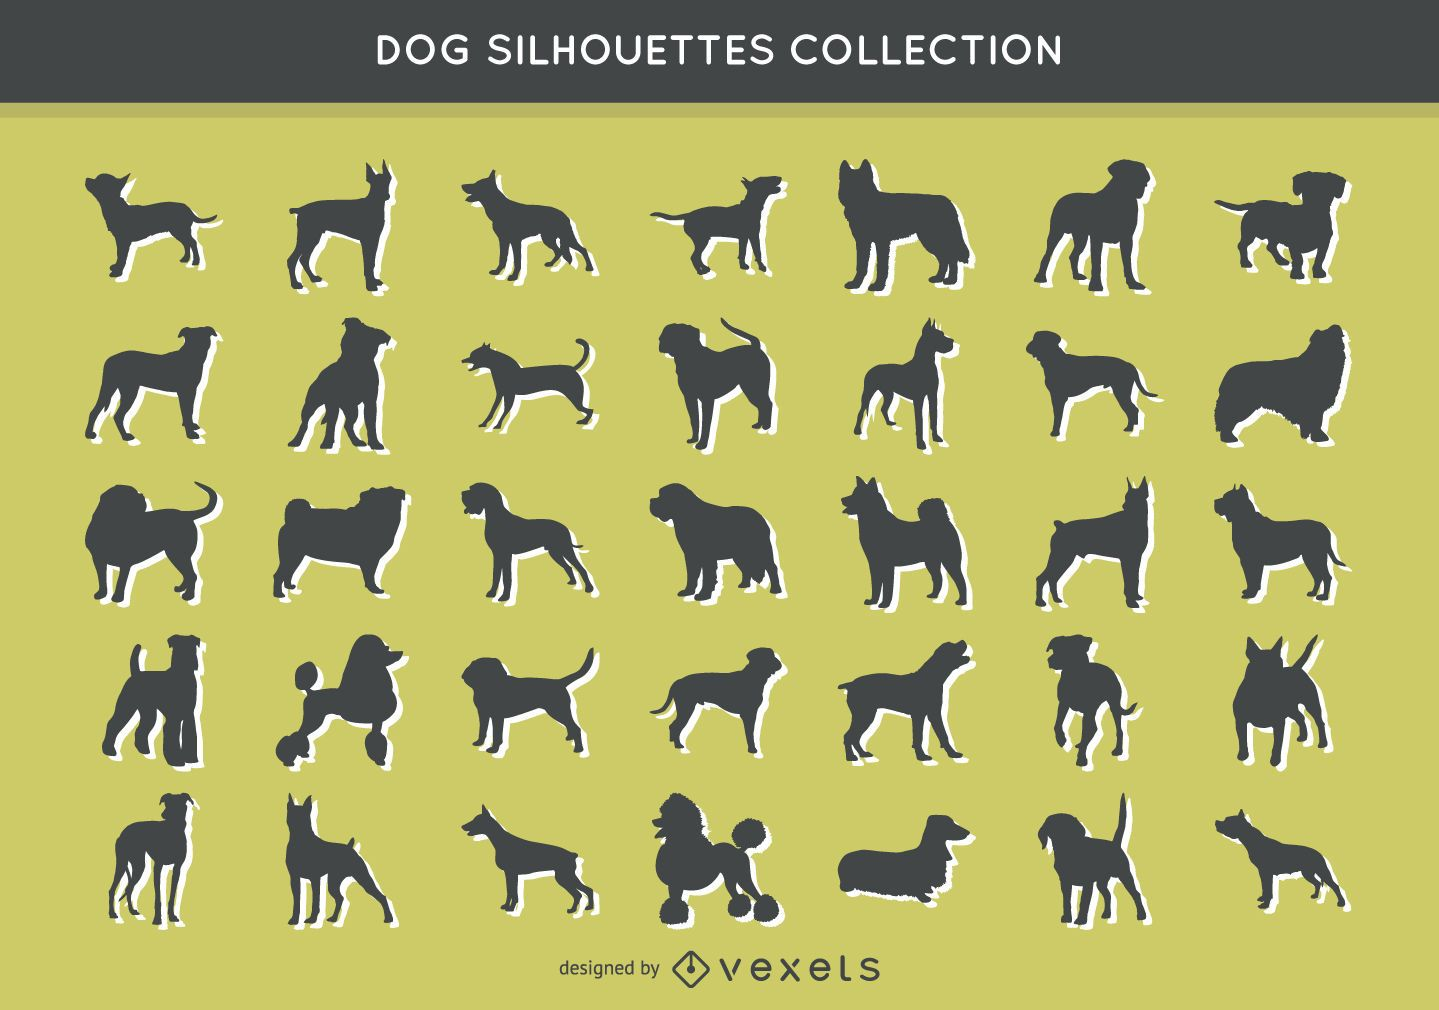 35 dog silhouettes collection